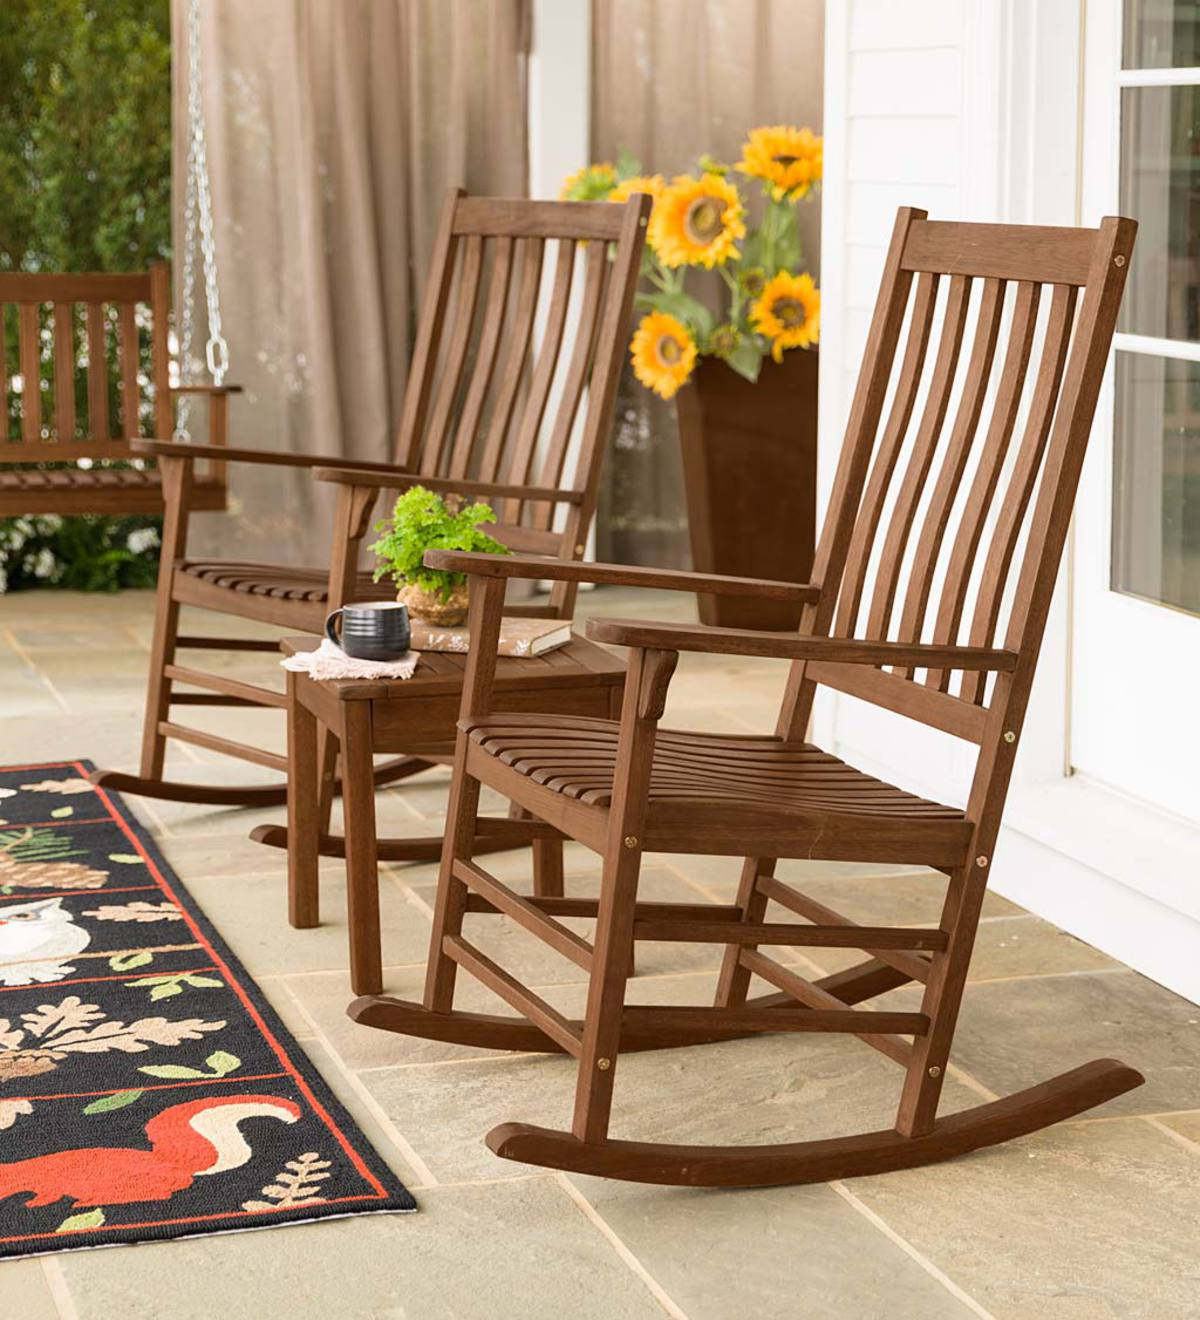 Slatted Wooden Porch Furniture